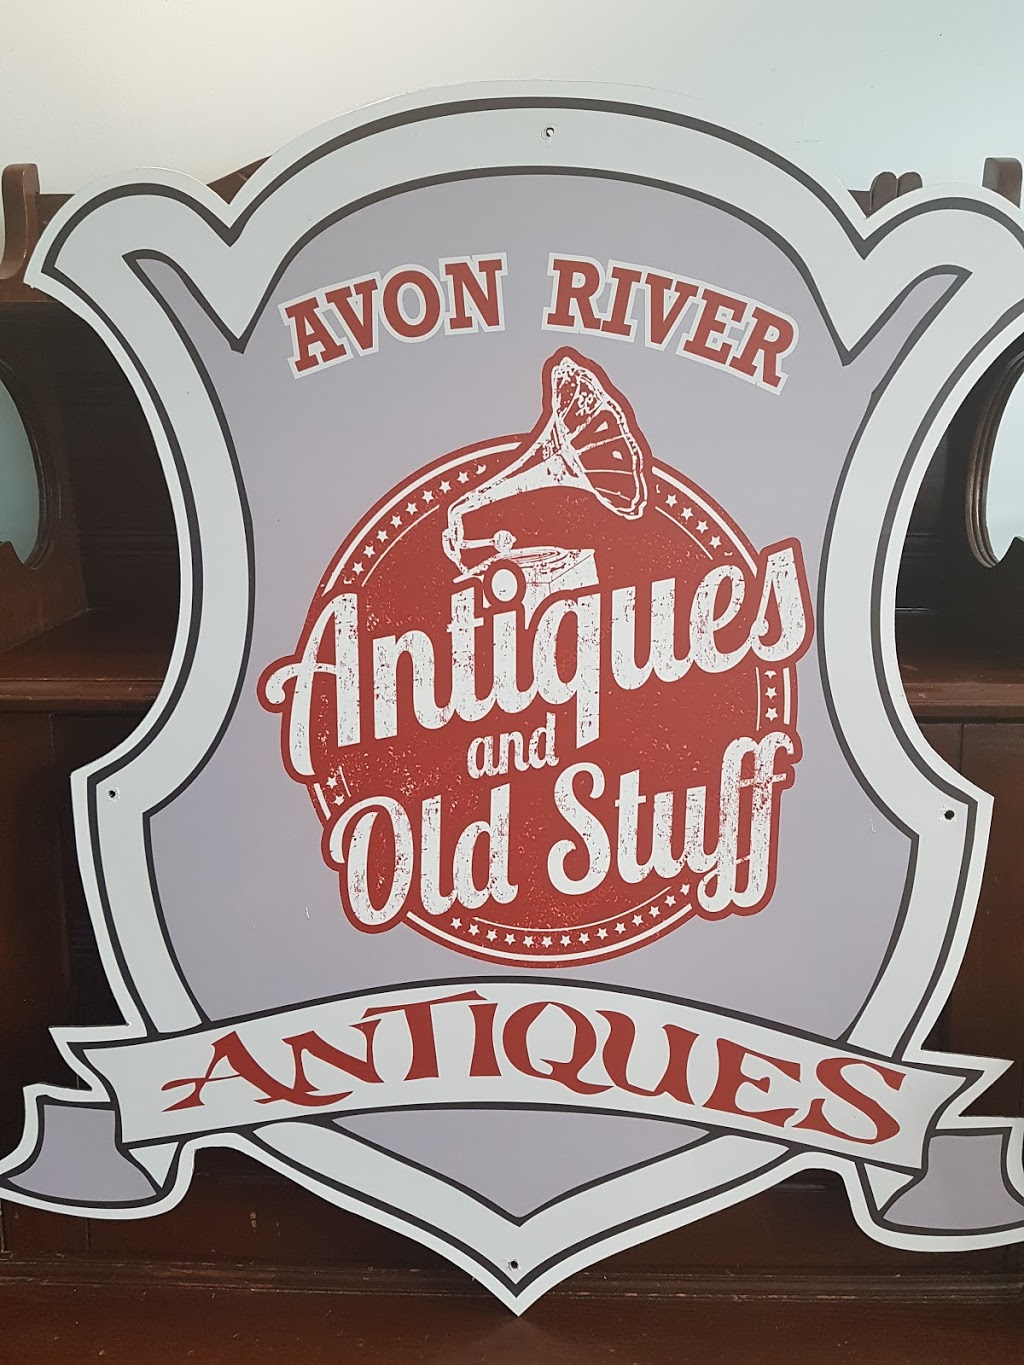 Avon River Antiques | home goods store | 40 Water St, Windsor, NS B0N 2T0, Canada | 9027981281 OR +1 902-798-1281